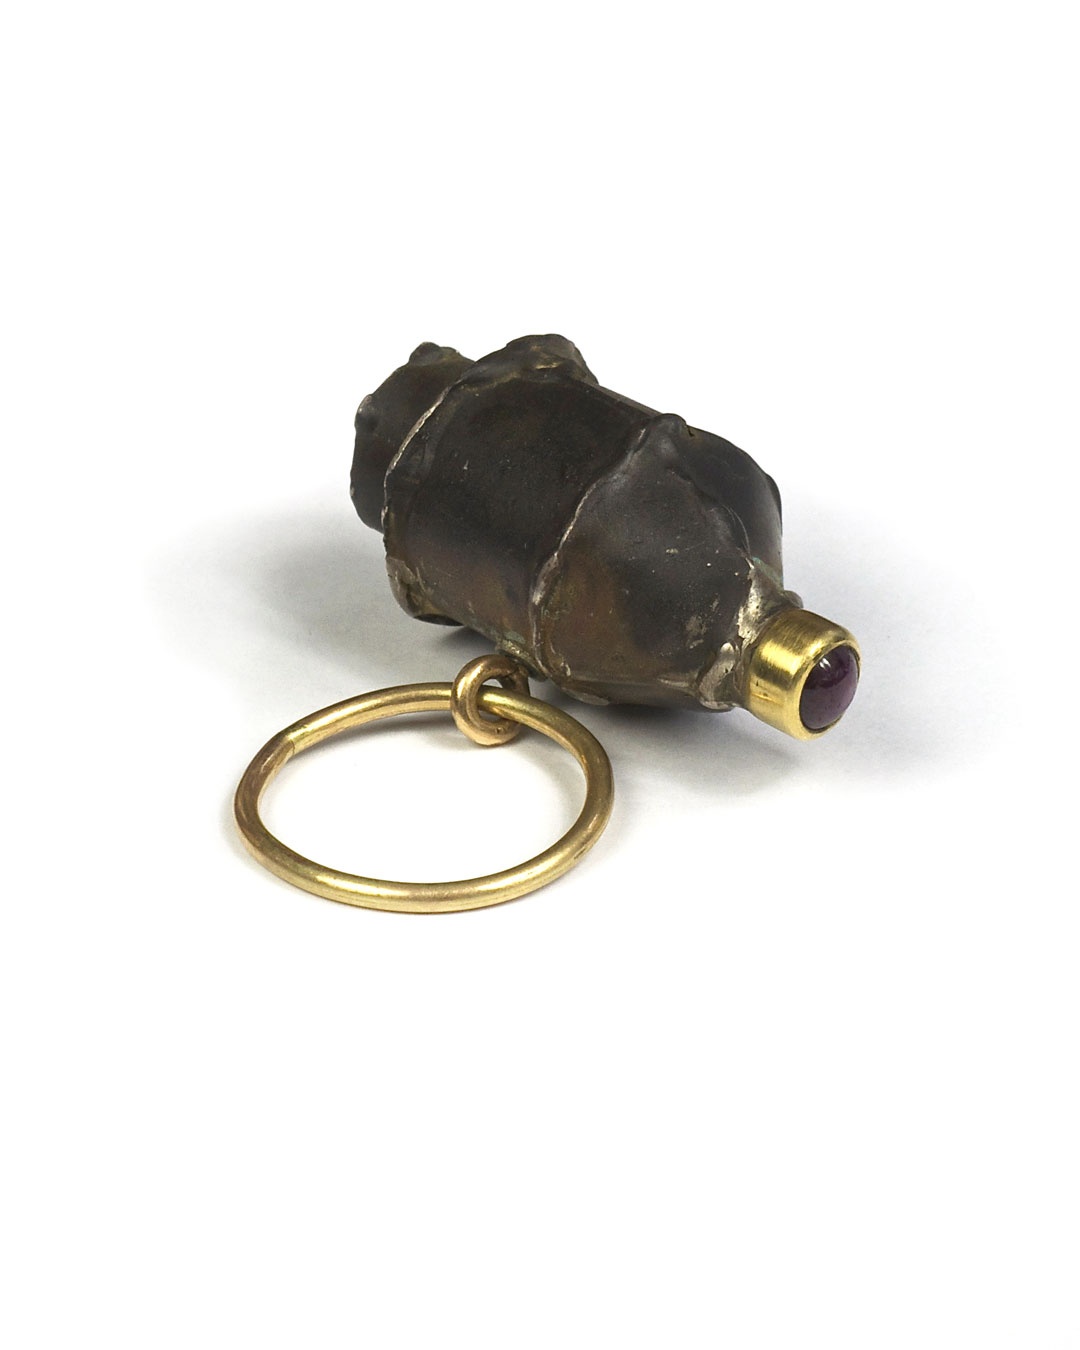 Andrea Wippermann, untitled, 1998, ring; silver, 14ct gold, ruby, 40 x 35 x 19 mm, €1350